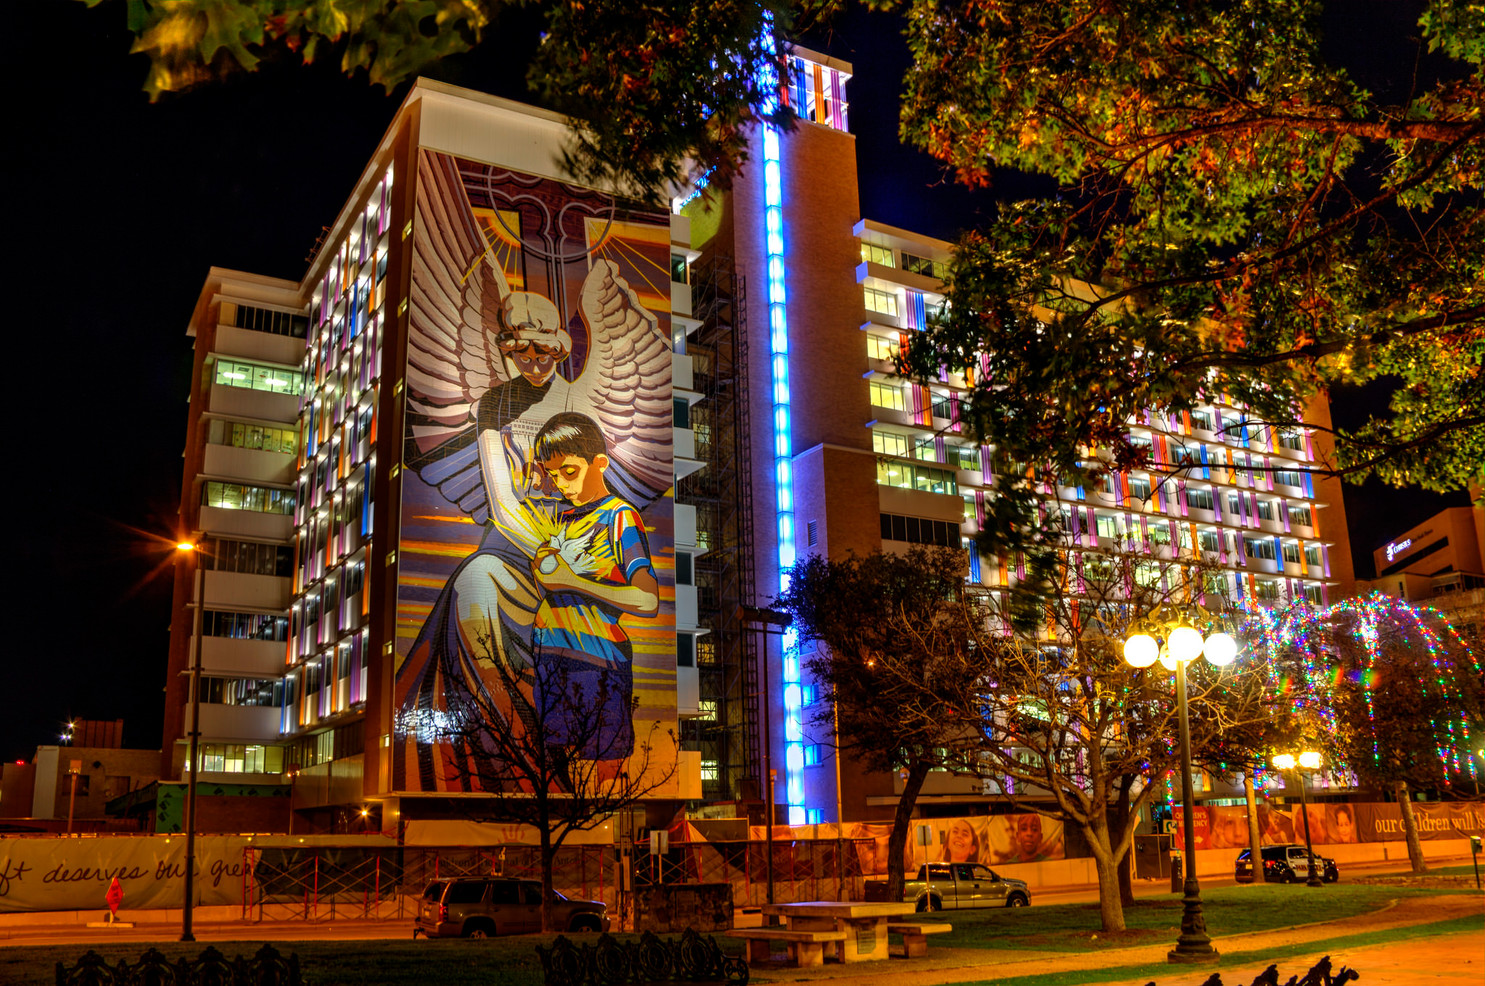 In 2013, the downtown campus of Santa Rosa Hospital was converted to a standalone facility called the Children's Hospital of San Antonio.